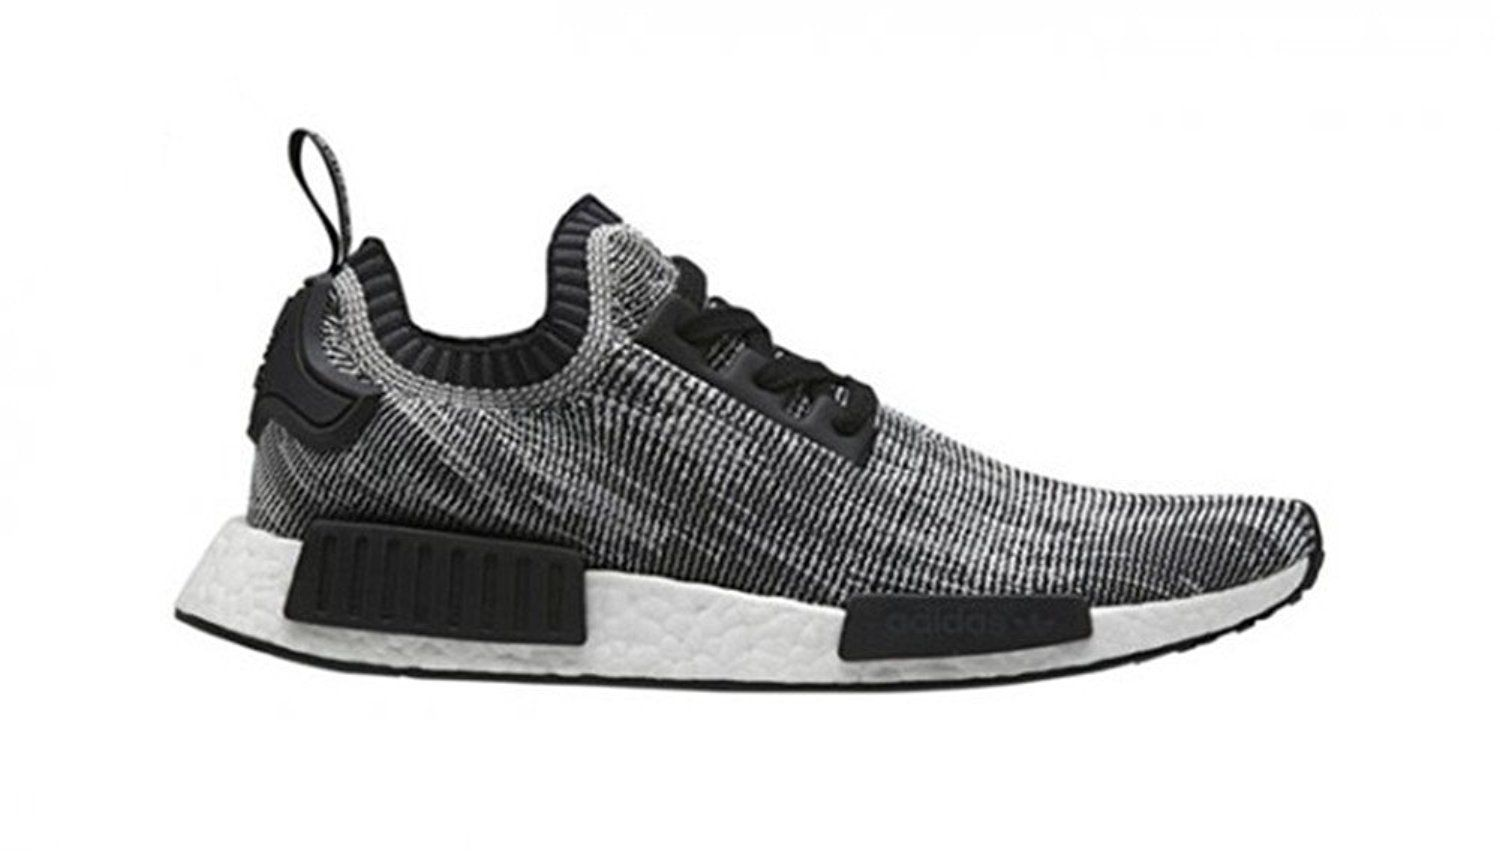 9f2097a5dc28 nmd r1 click image to close